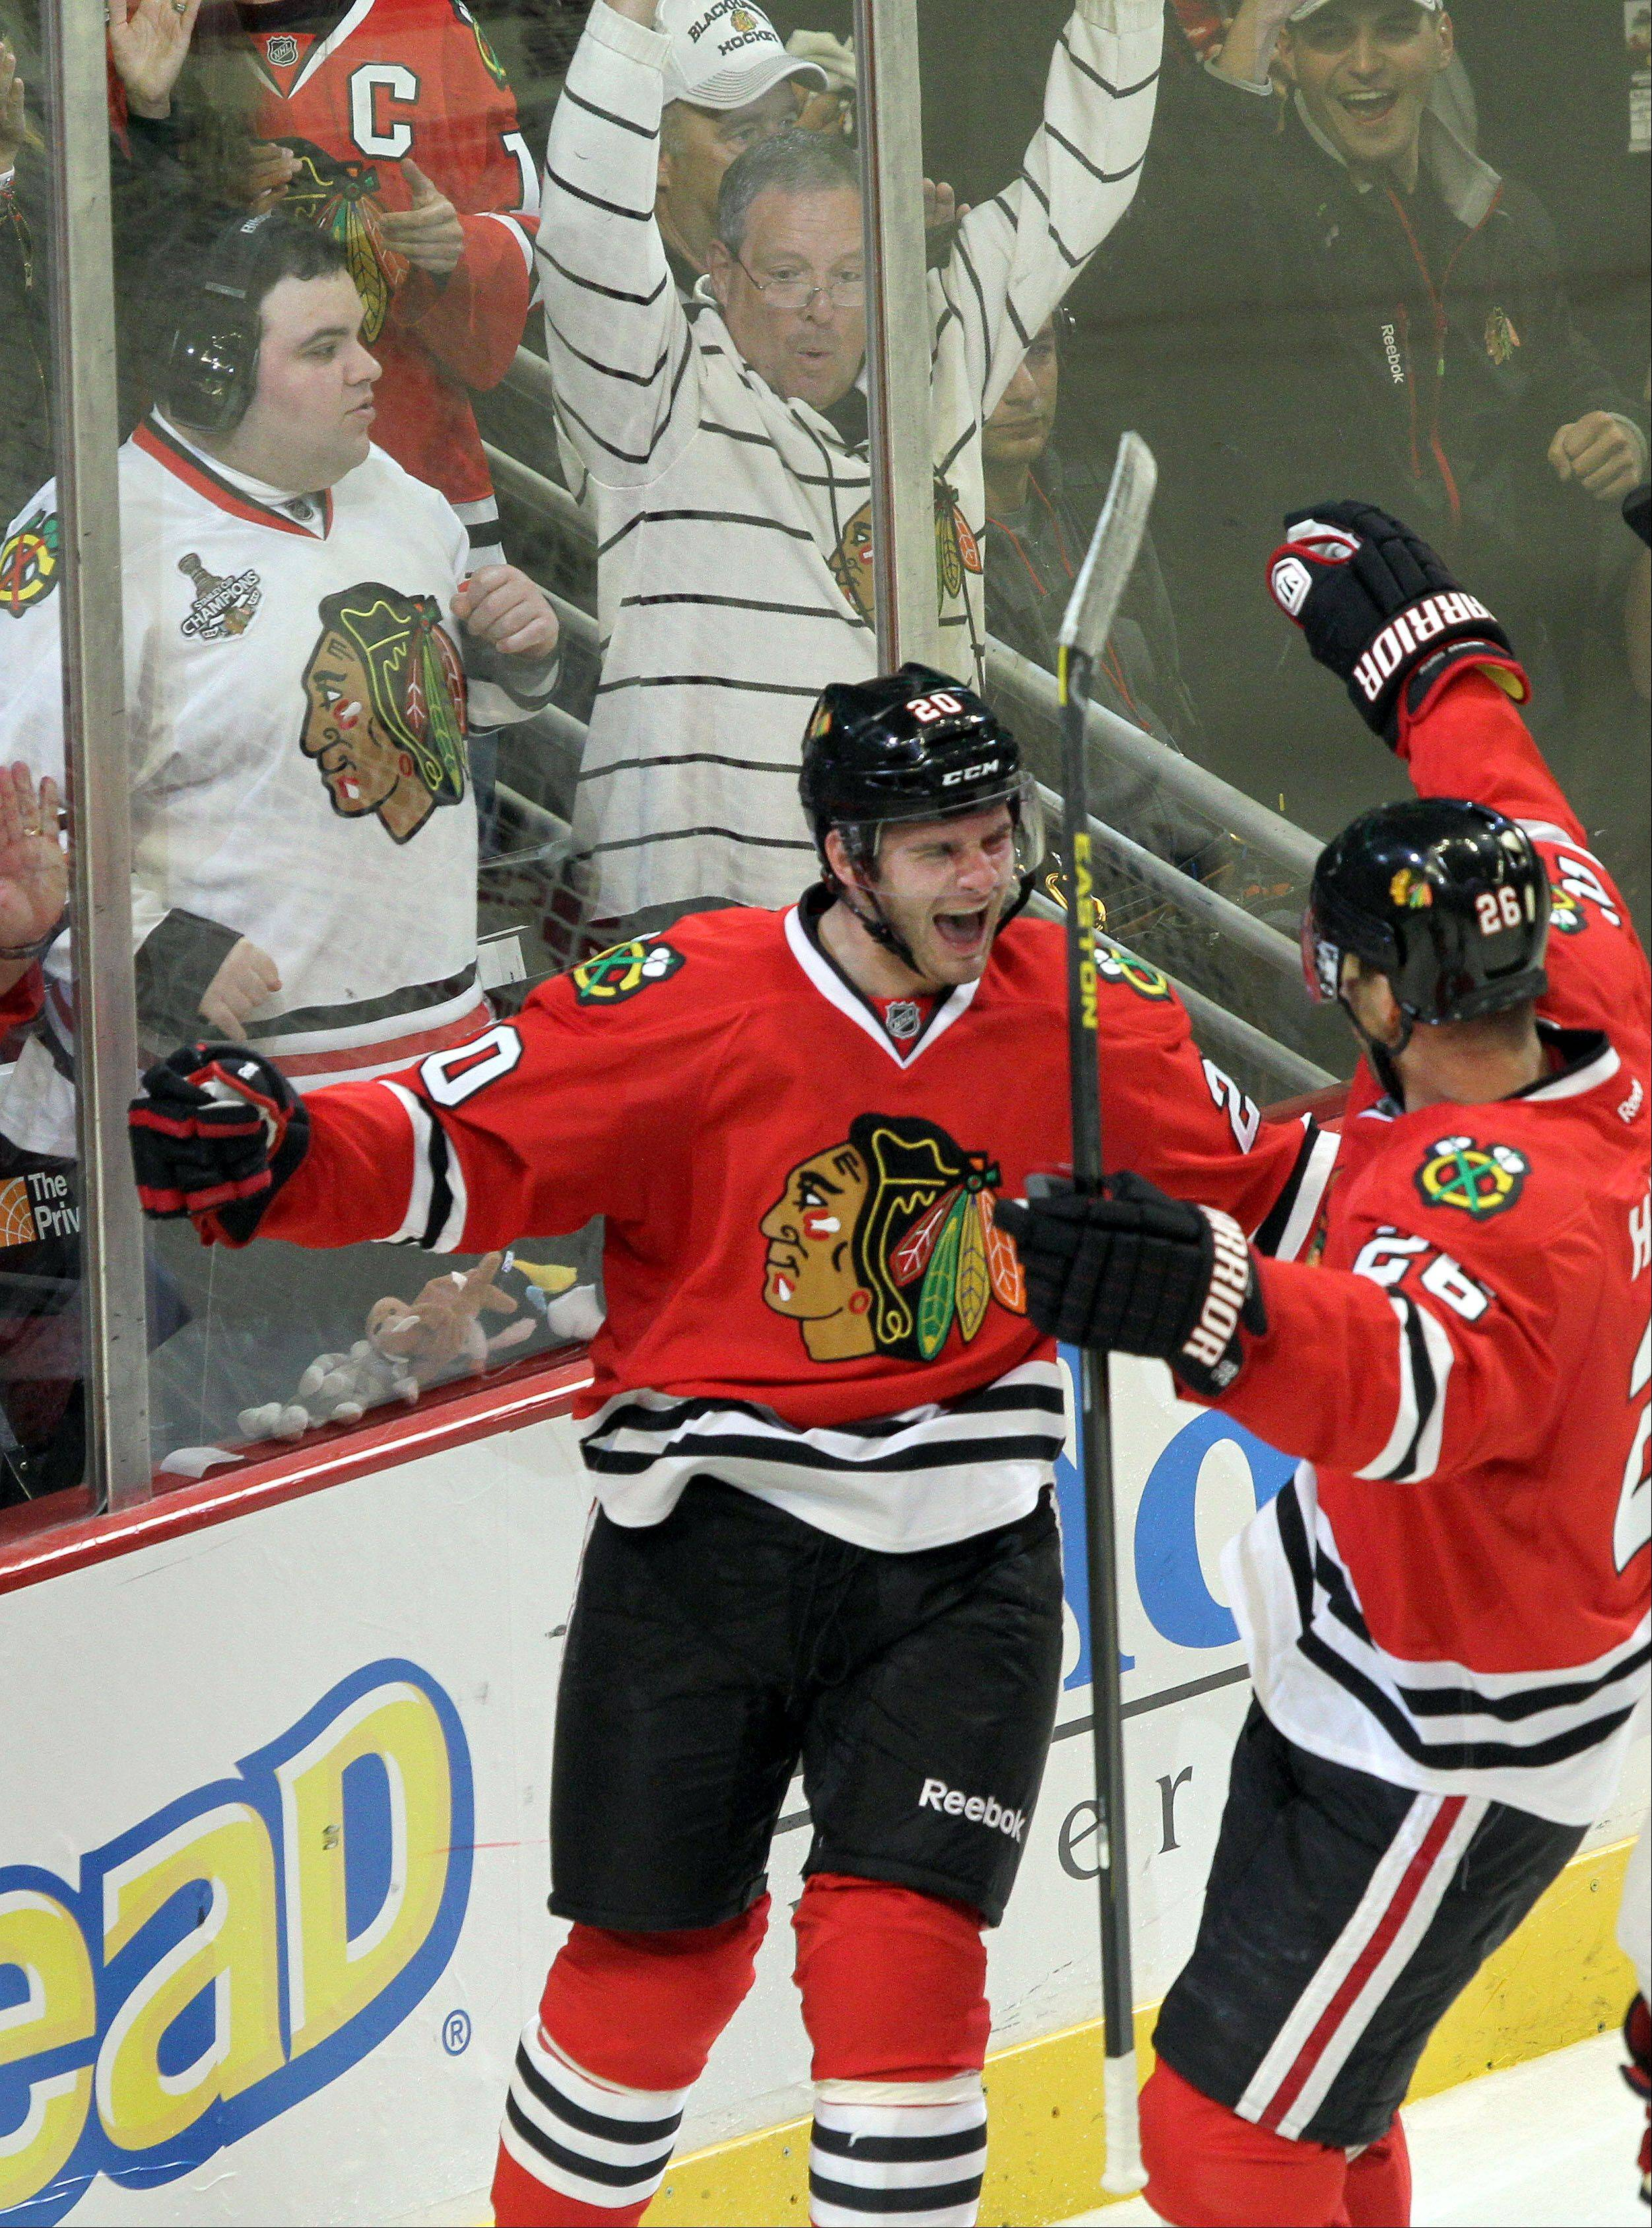 Steve Lundy/slundy@dailyherald.com Chicago Blackhawks left wing Brandon Saad celebrates with Chicago Blackhawks center Michal Handzus after Saad's 3rd period goal during their opening-day-game Tuesday at the United Center in Chicago.